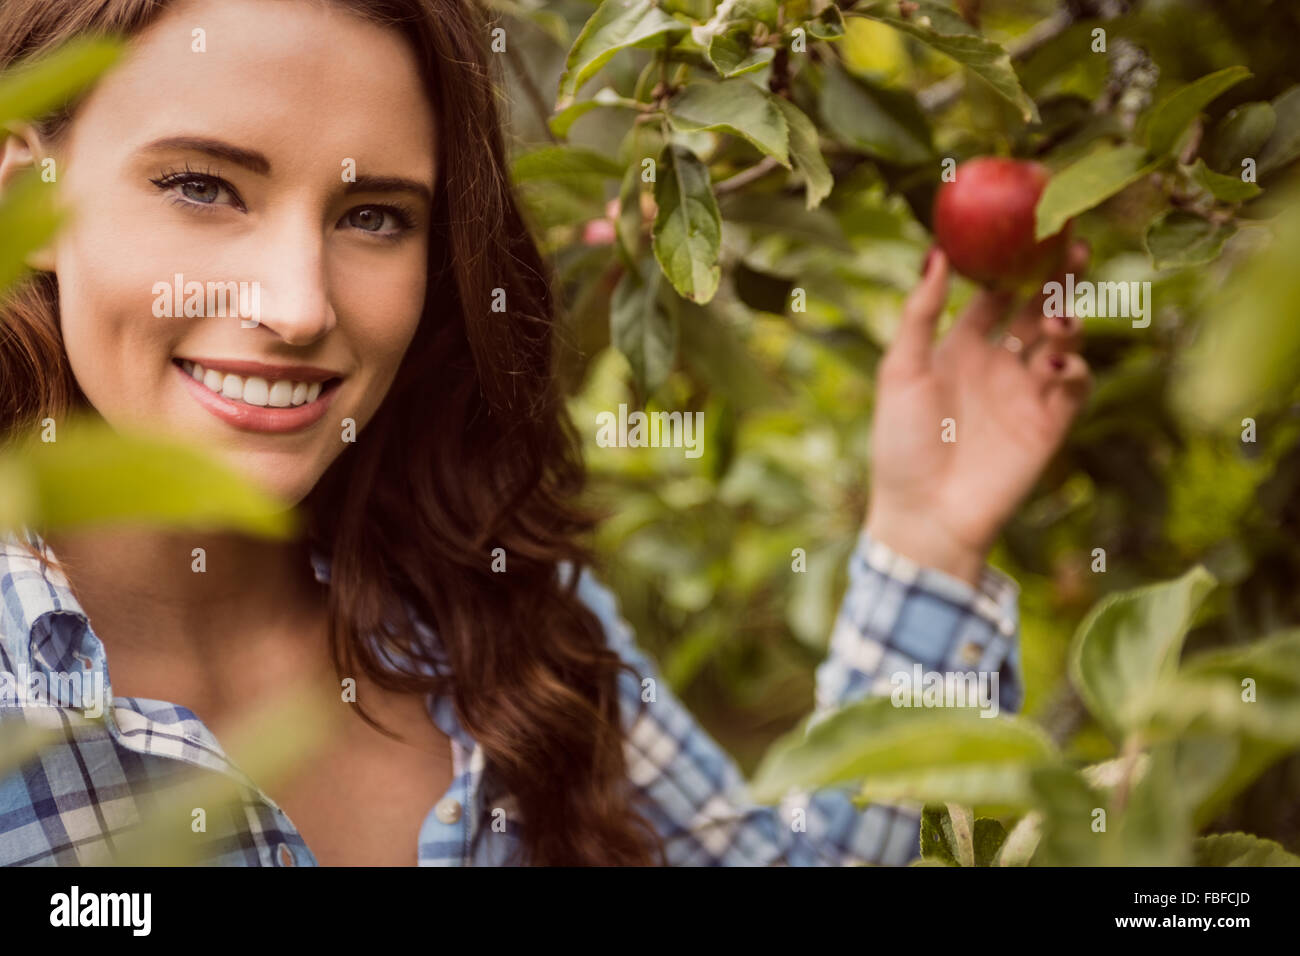 Portrait of woman touching apple - Stock Image